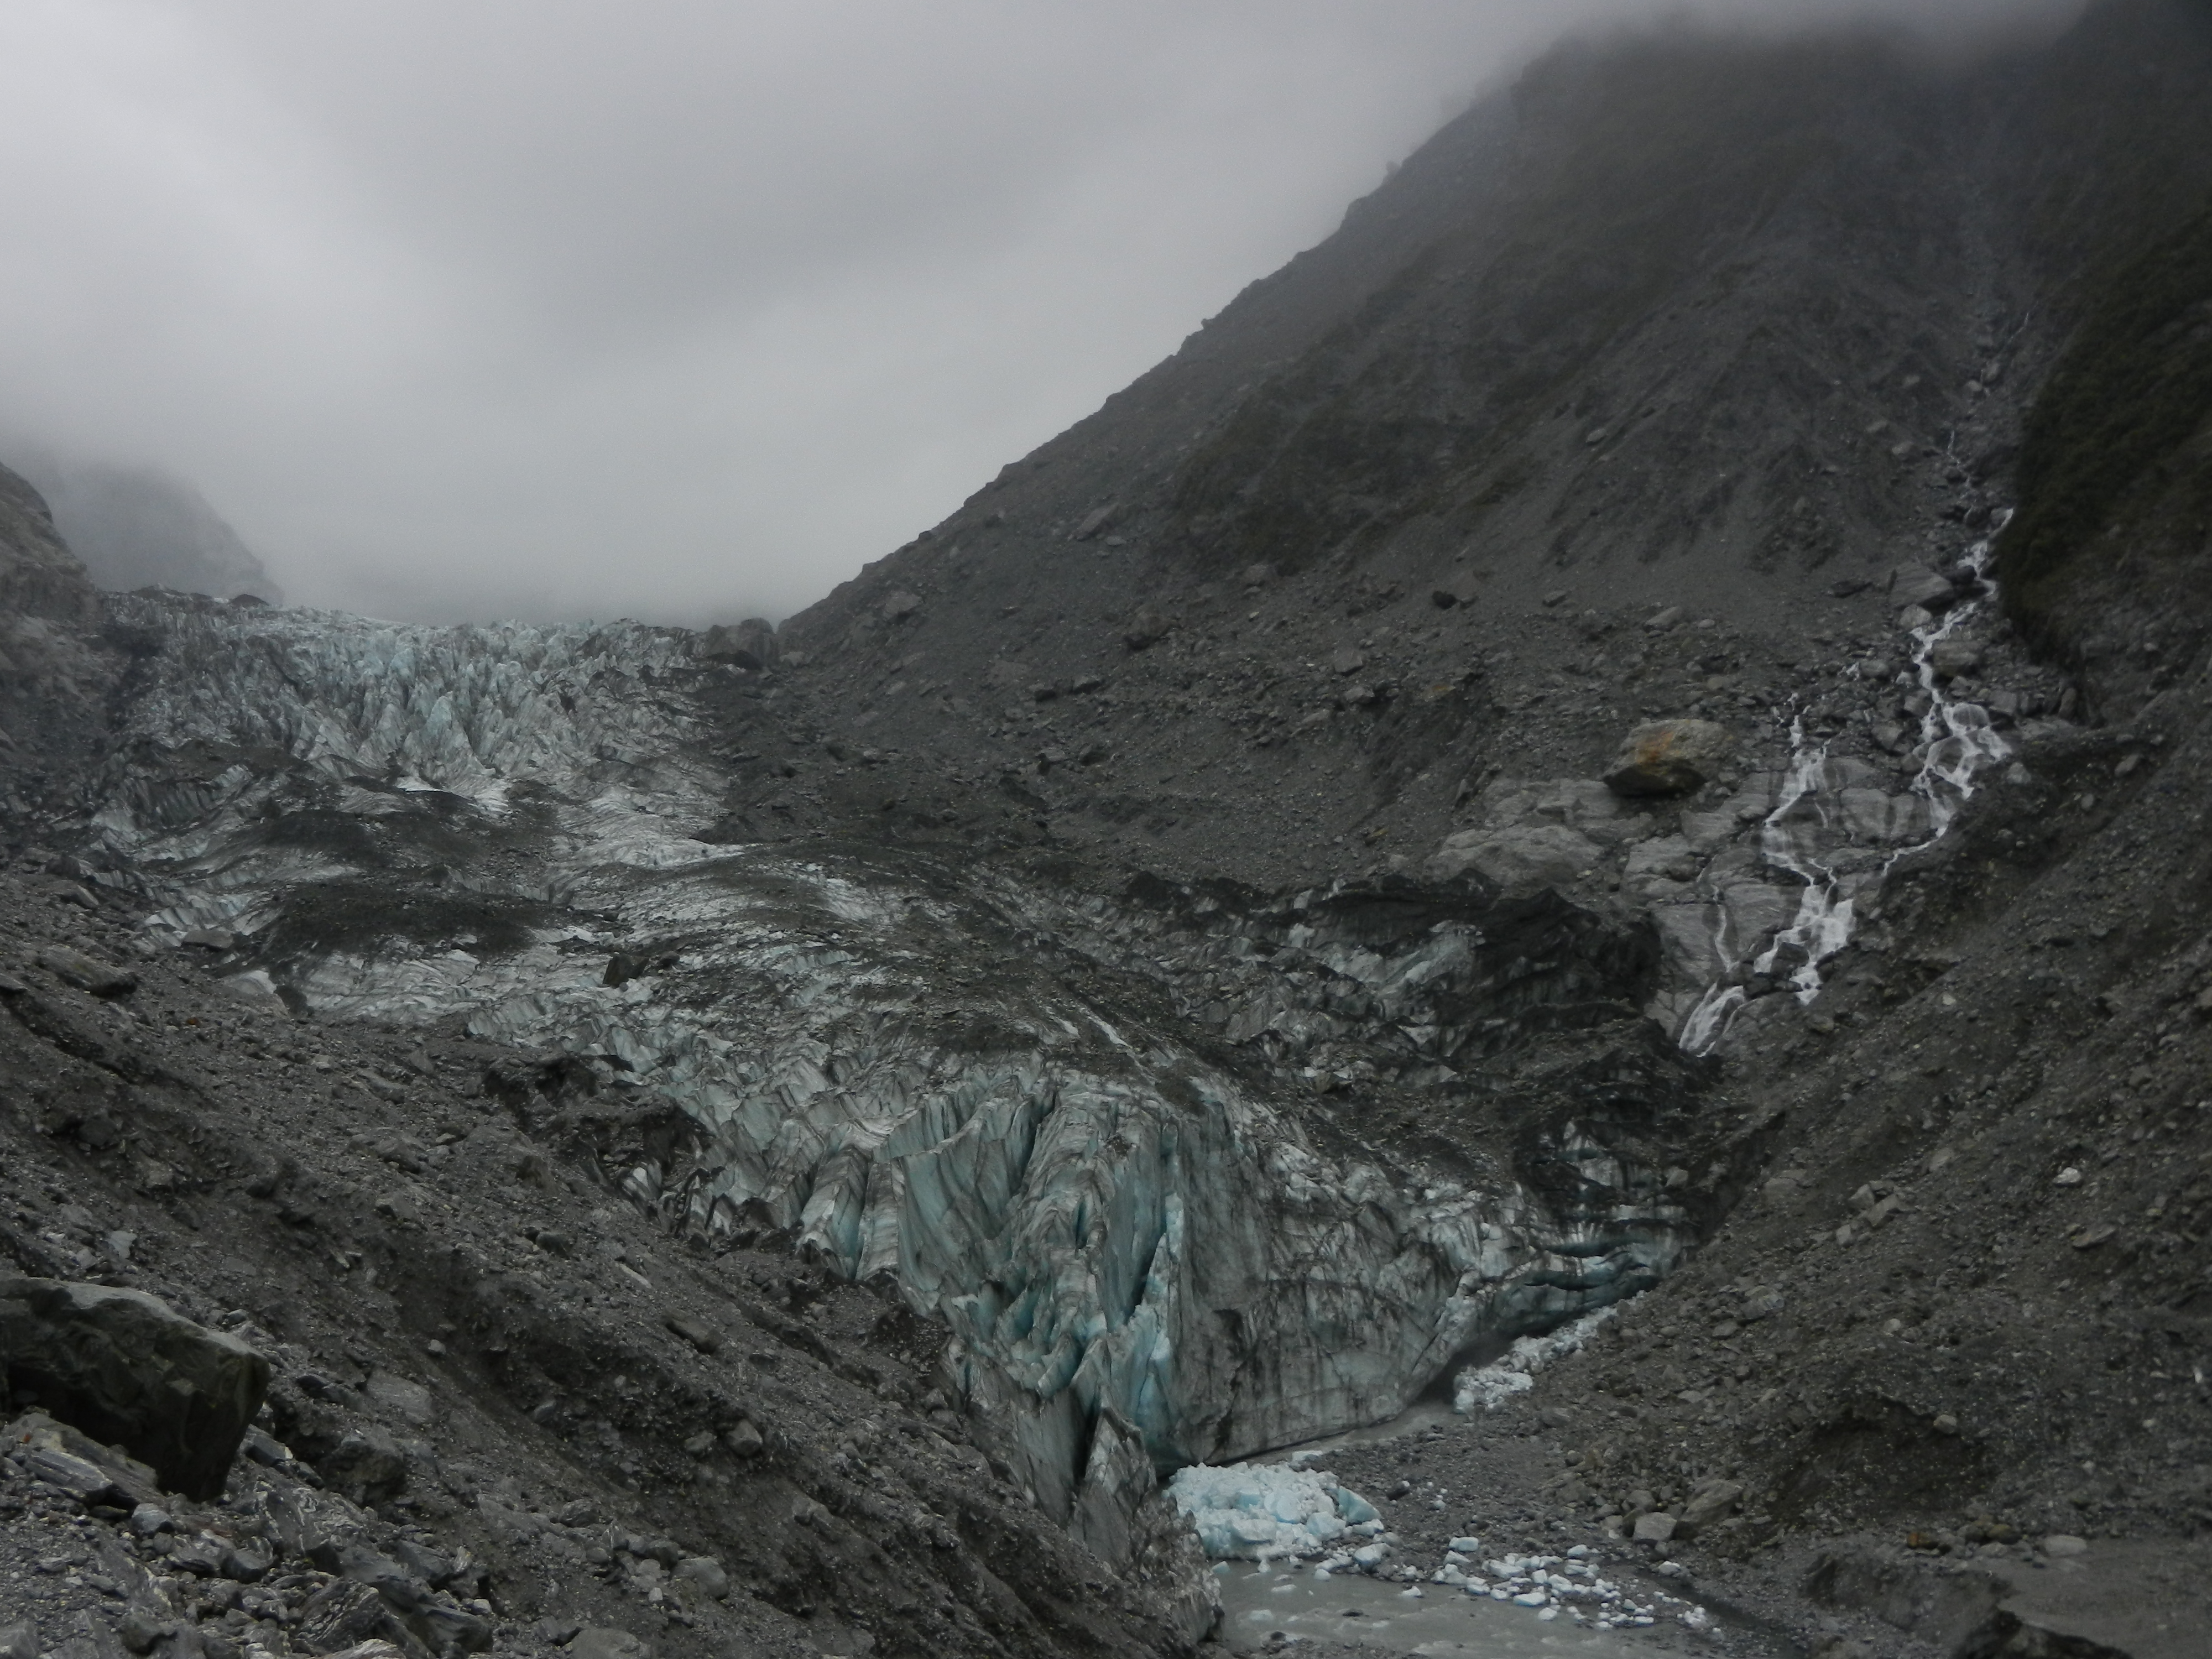 Rocky valley filled with a blue and white glacier.